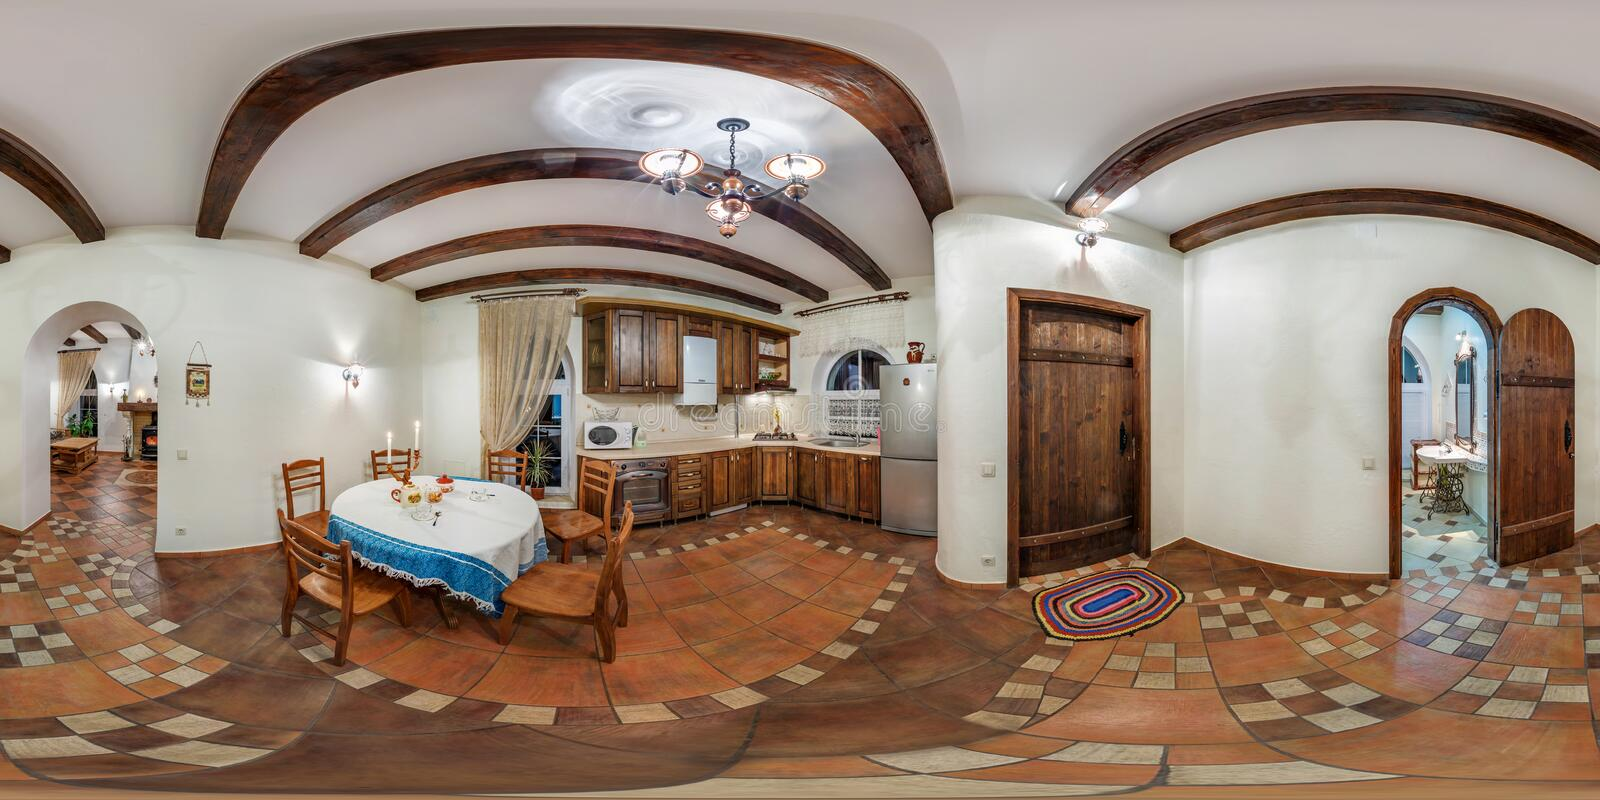 GRODNO, BELARUS - NOVEMBER 13, 2013: Panorama in interior kitchen in vacation house. Full spherical 360 by 180 degrees seamless royalty free stock photography